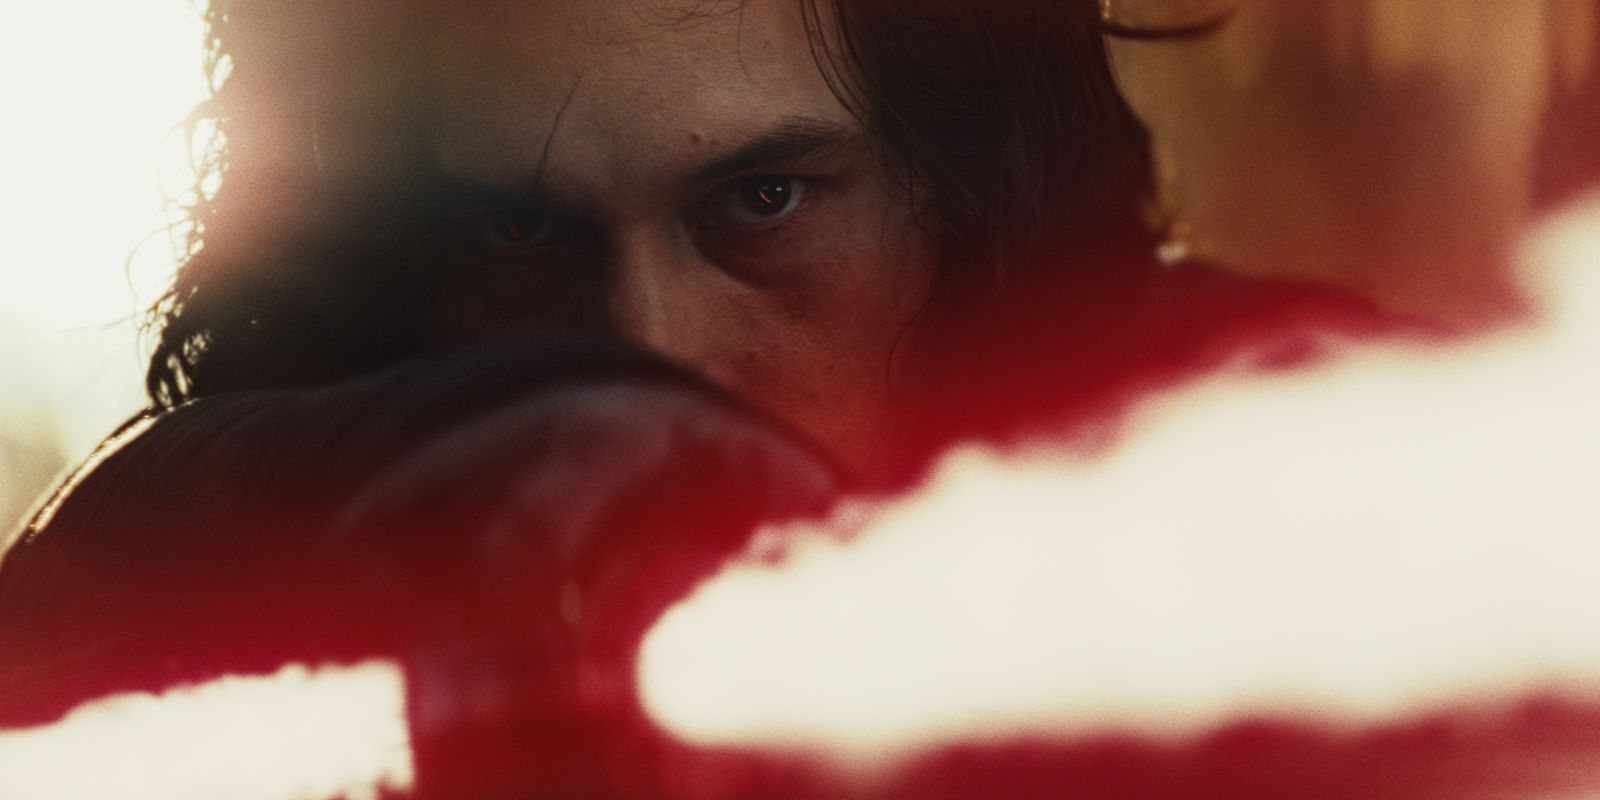 Star Wars The Last Jedi teaser trailer - Kylo Ren